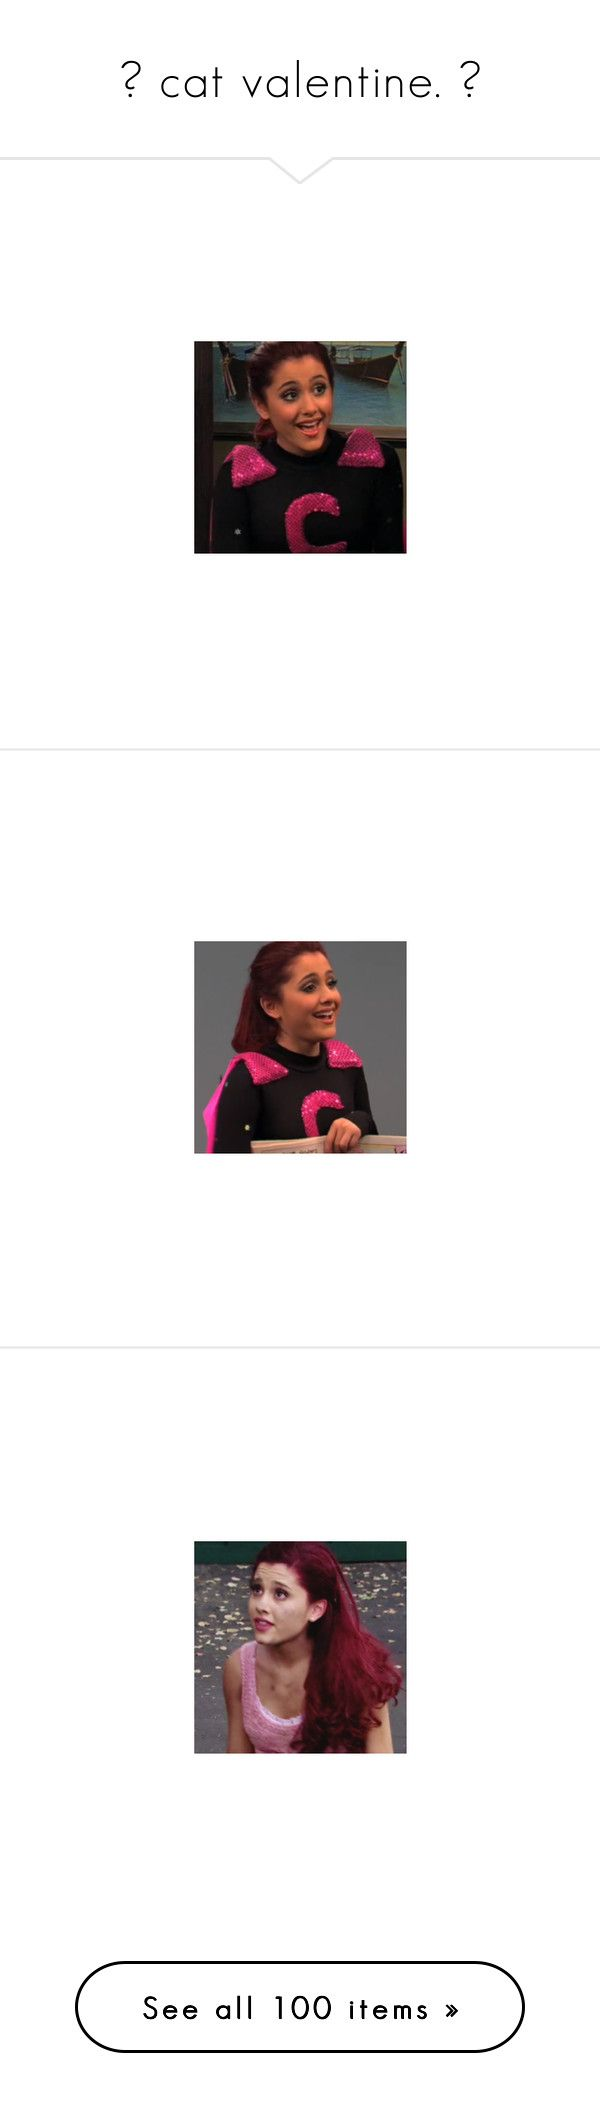 """""""▬ cat valentine. ▬"""" by disney-clipper ❤ liked on Polyvore featuring ArianaGrande, Victorious, CatValentine, SamAndCat, ariana grande and ariana"""